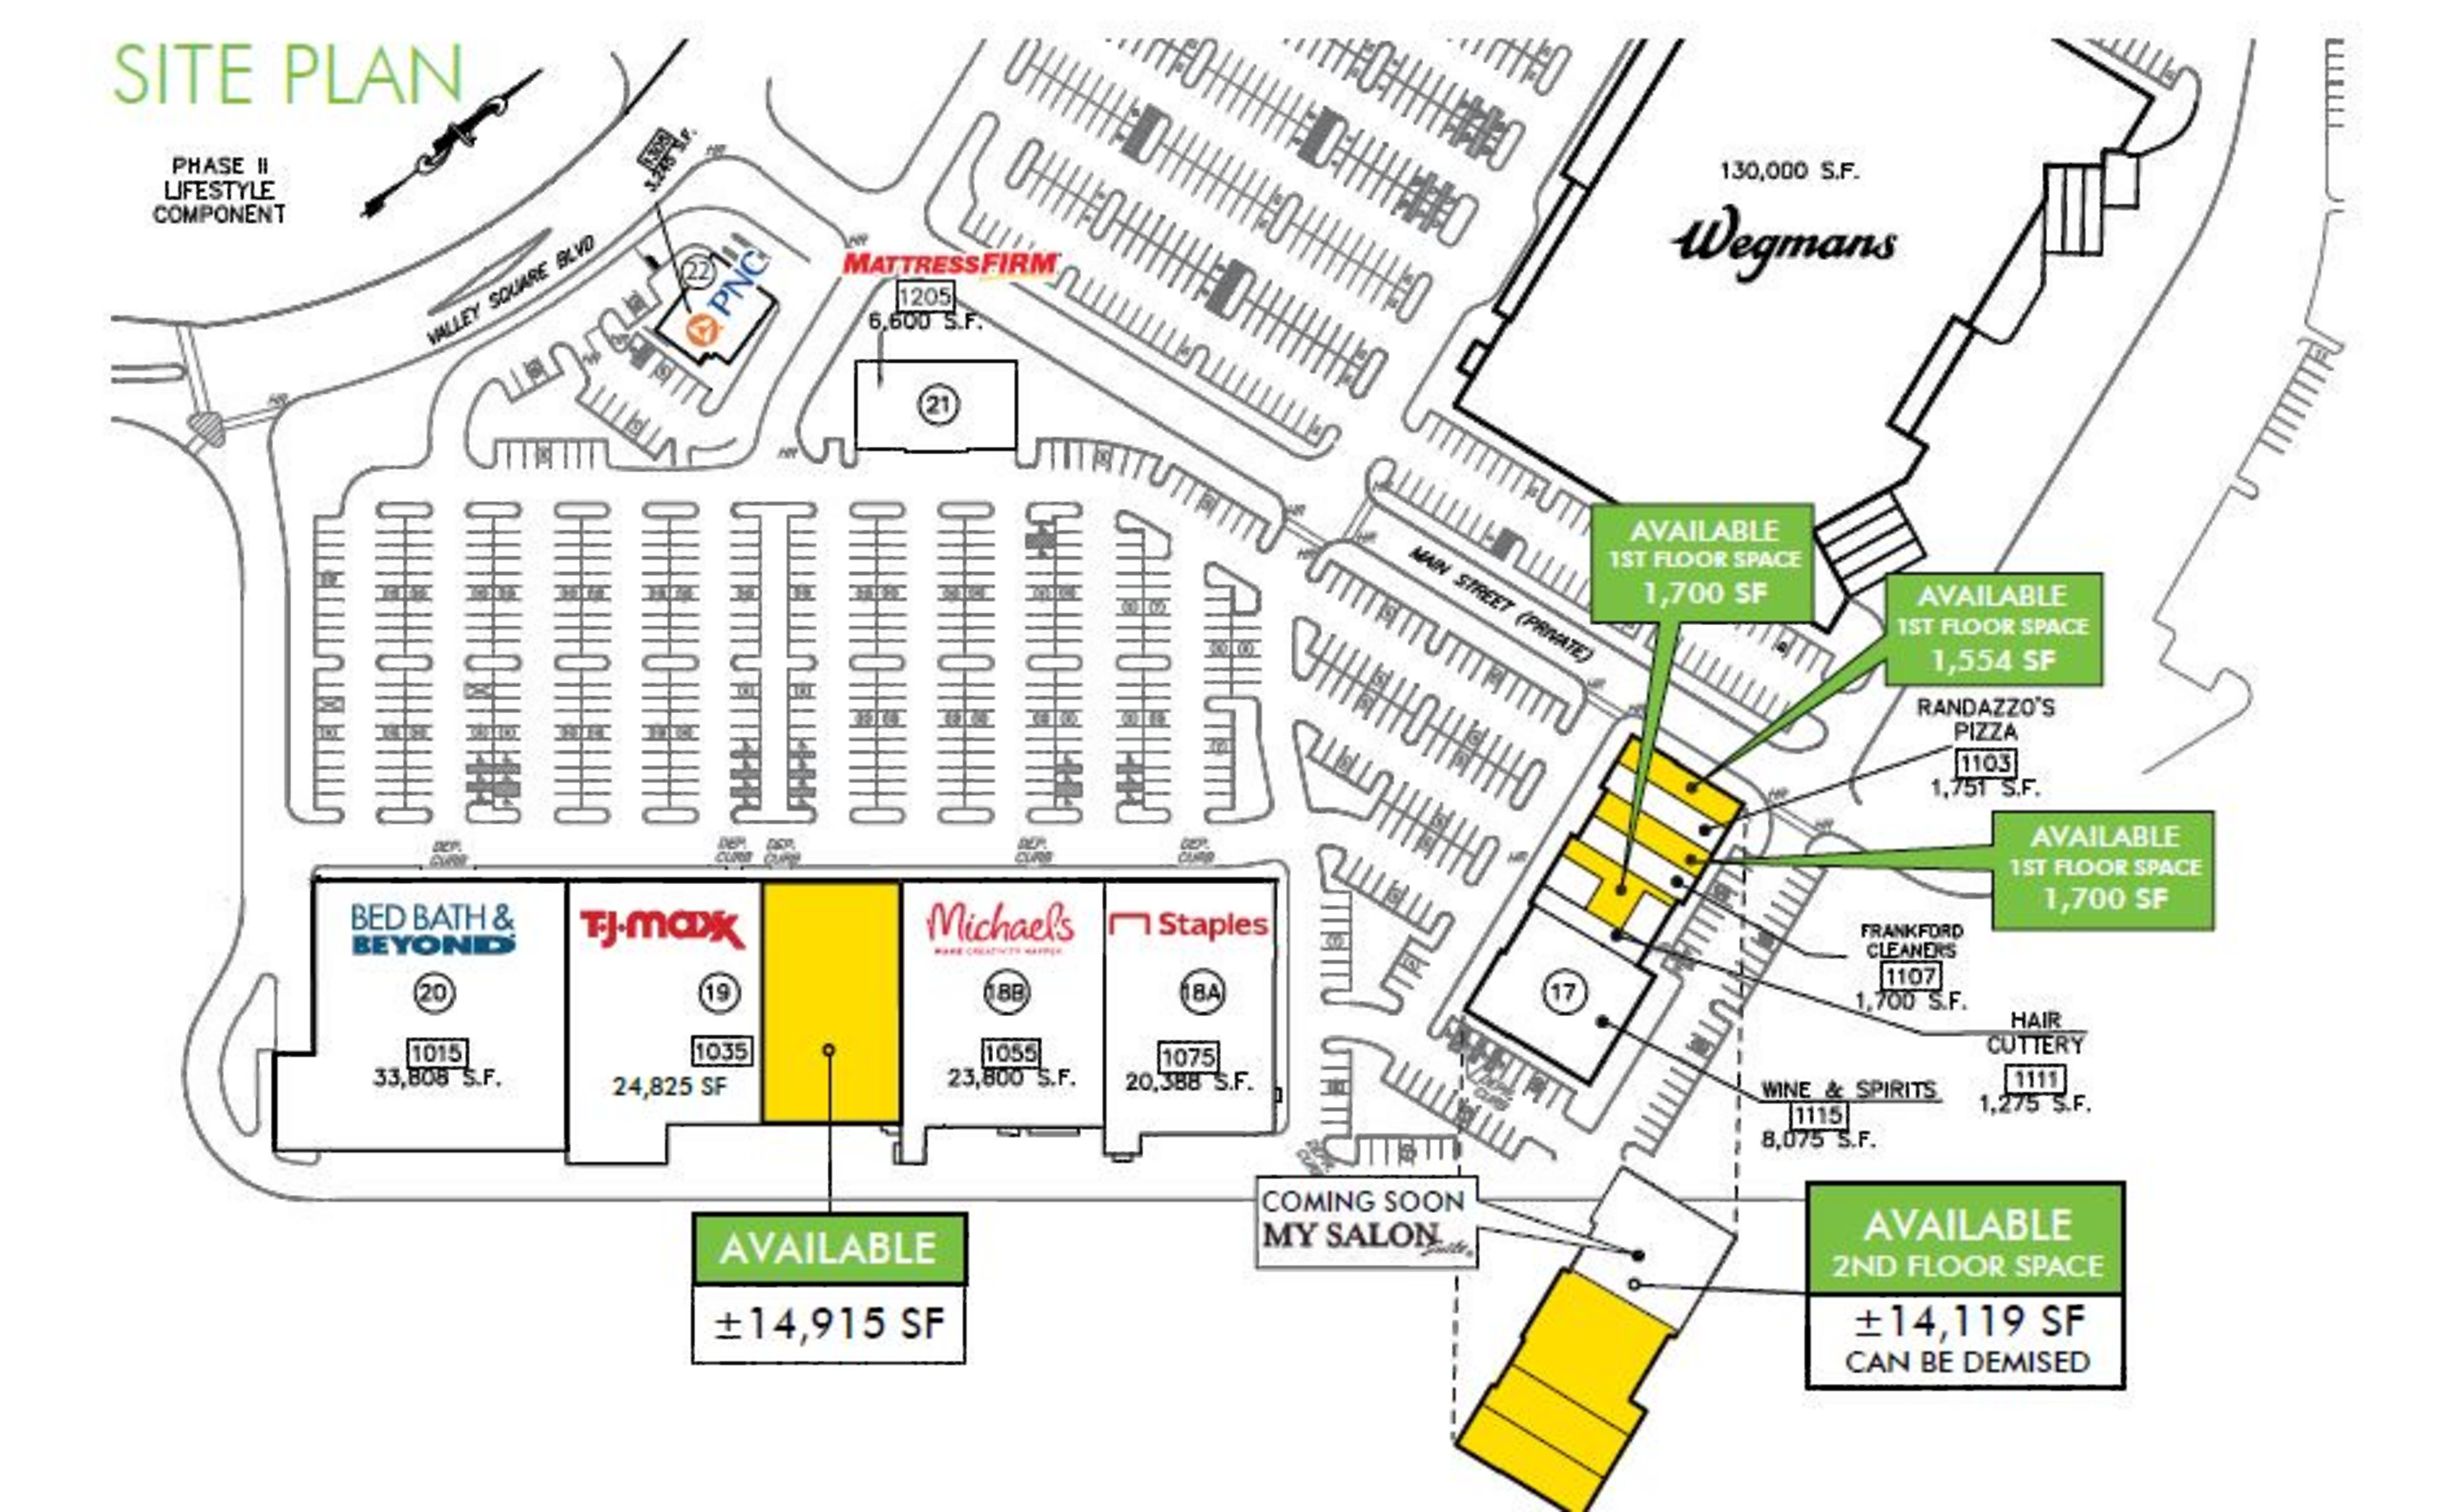 Valley Square Shopping Center: site plan